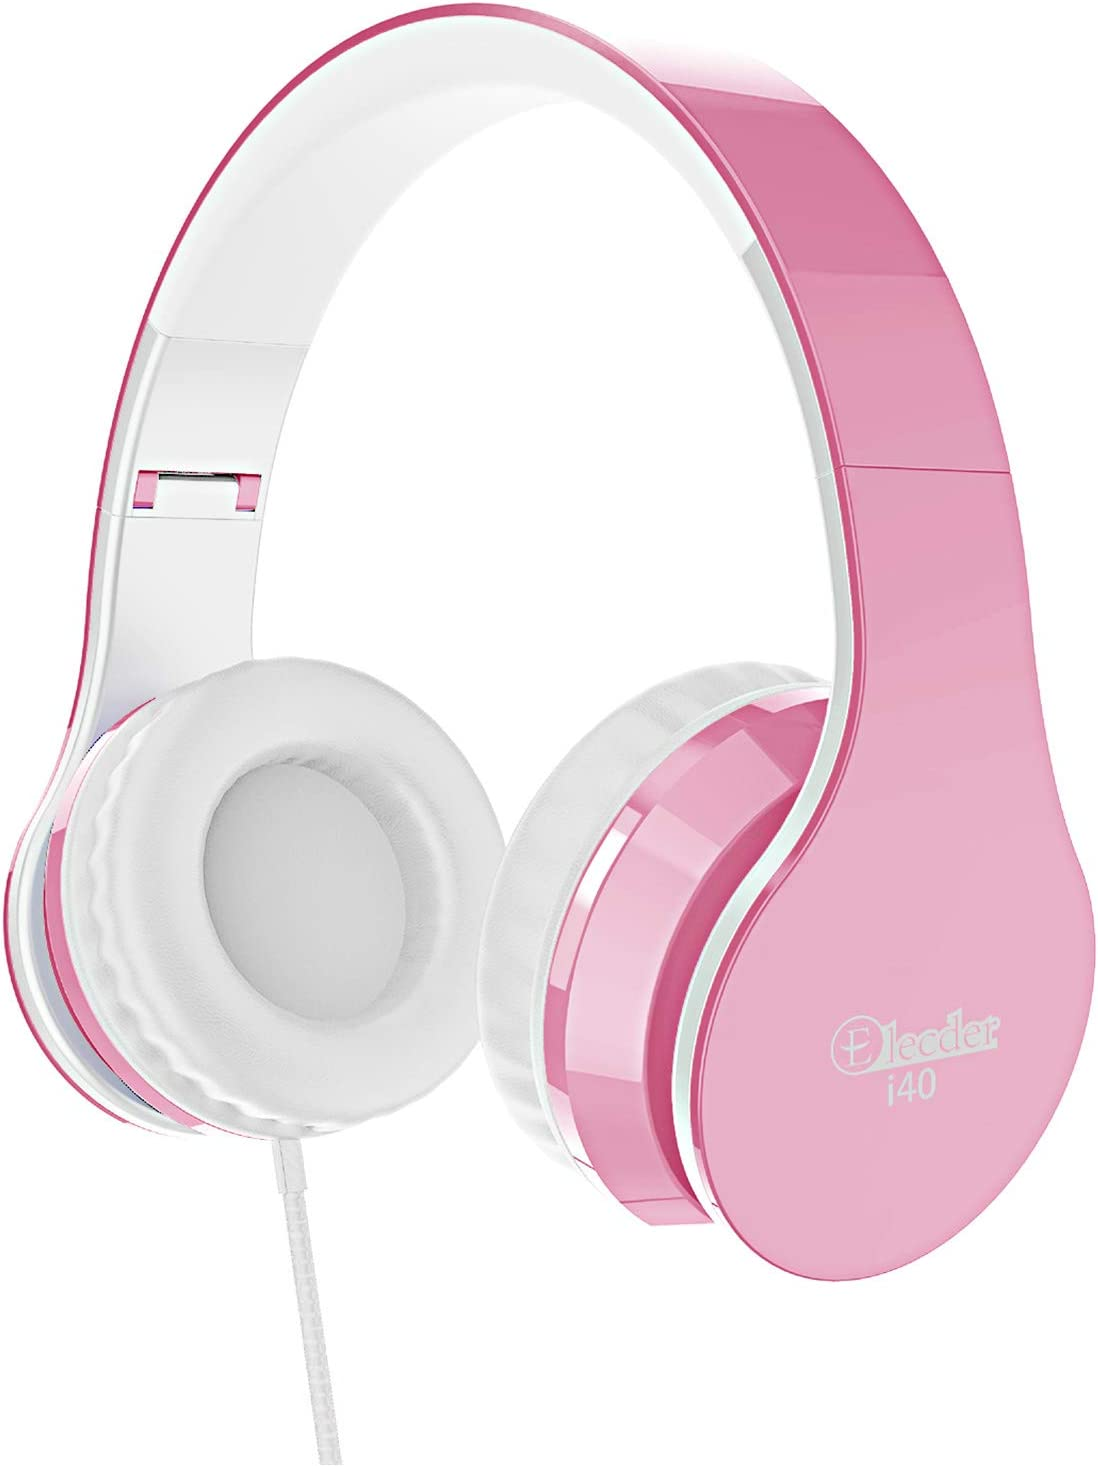 Elecder i40 Headphones with Microphone Foldable Lightweight Adjustable Wired On Ear Headsets with 3.5mm Jack for Cellphones Laptop Computer Smartphones MP3/4 Kindle School (Pink/White)